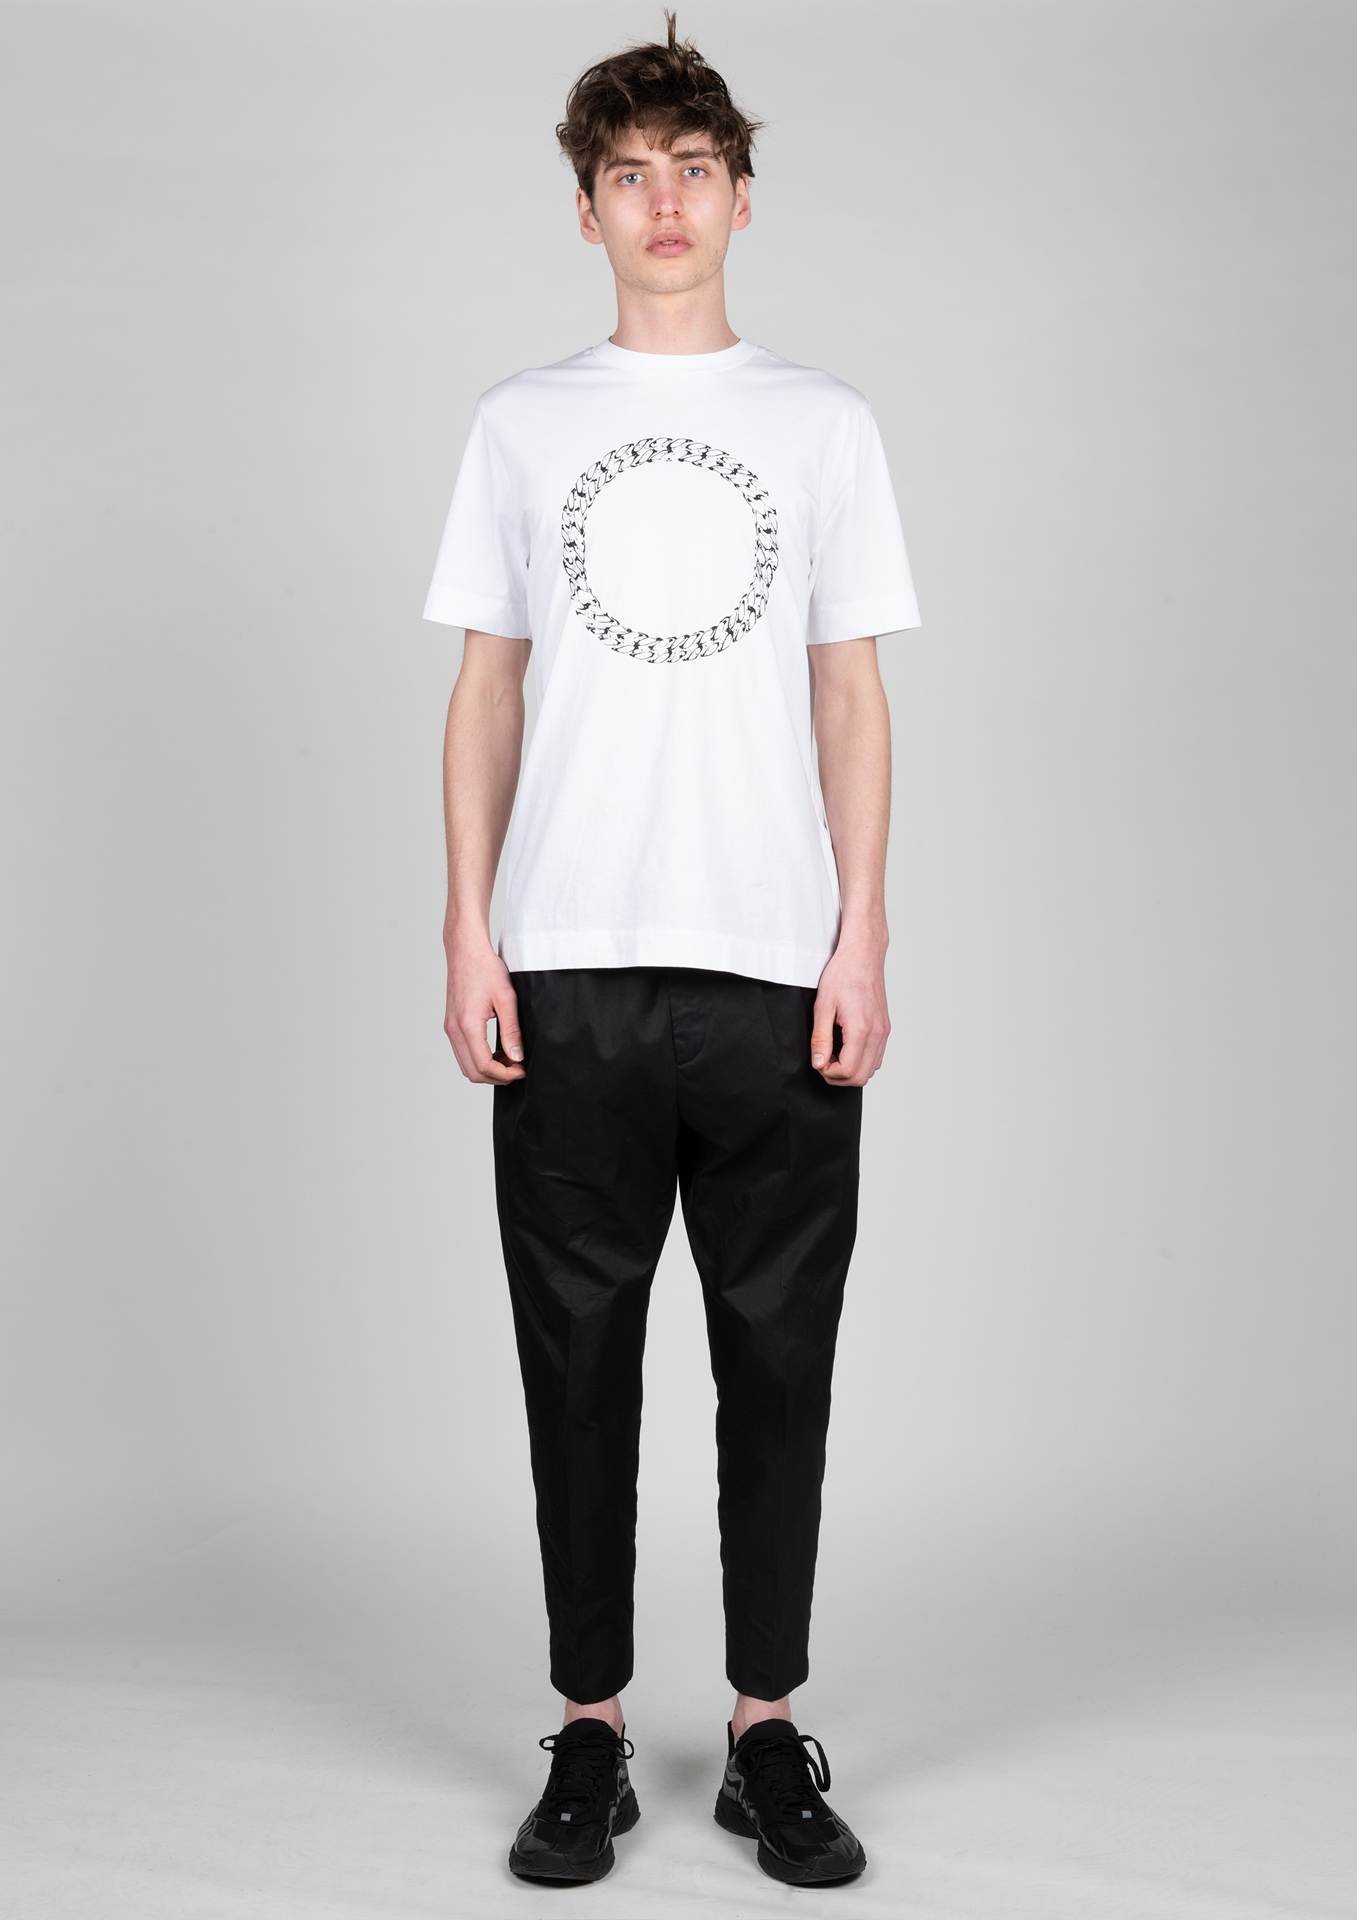 H T-Shirt AAMTS0222 Größe: M Farbe: white